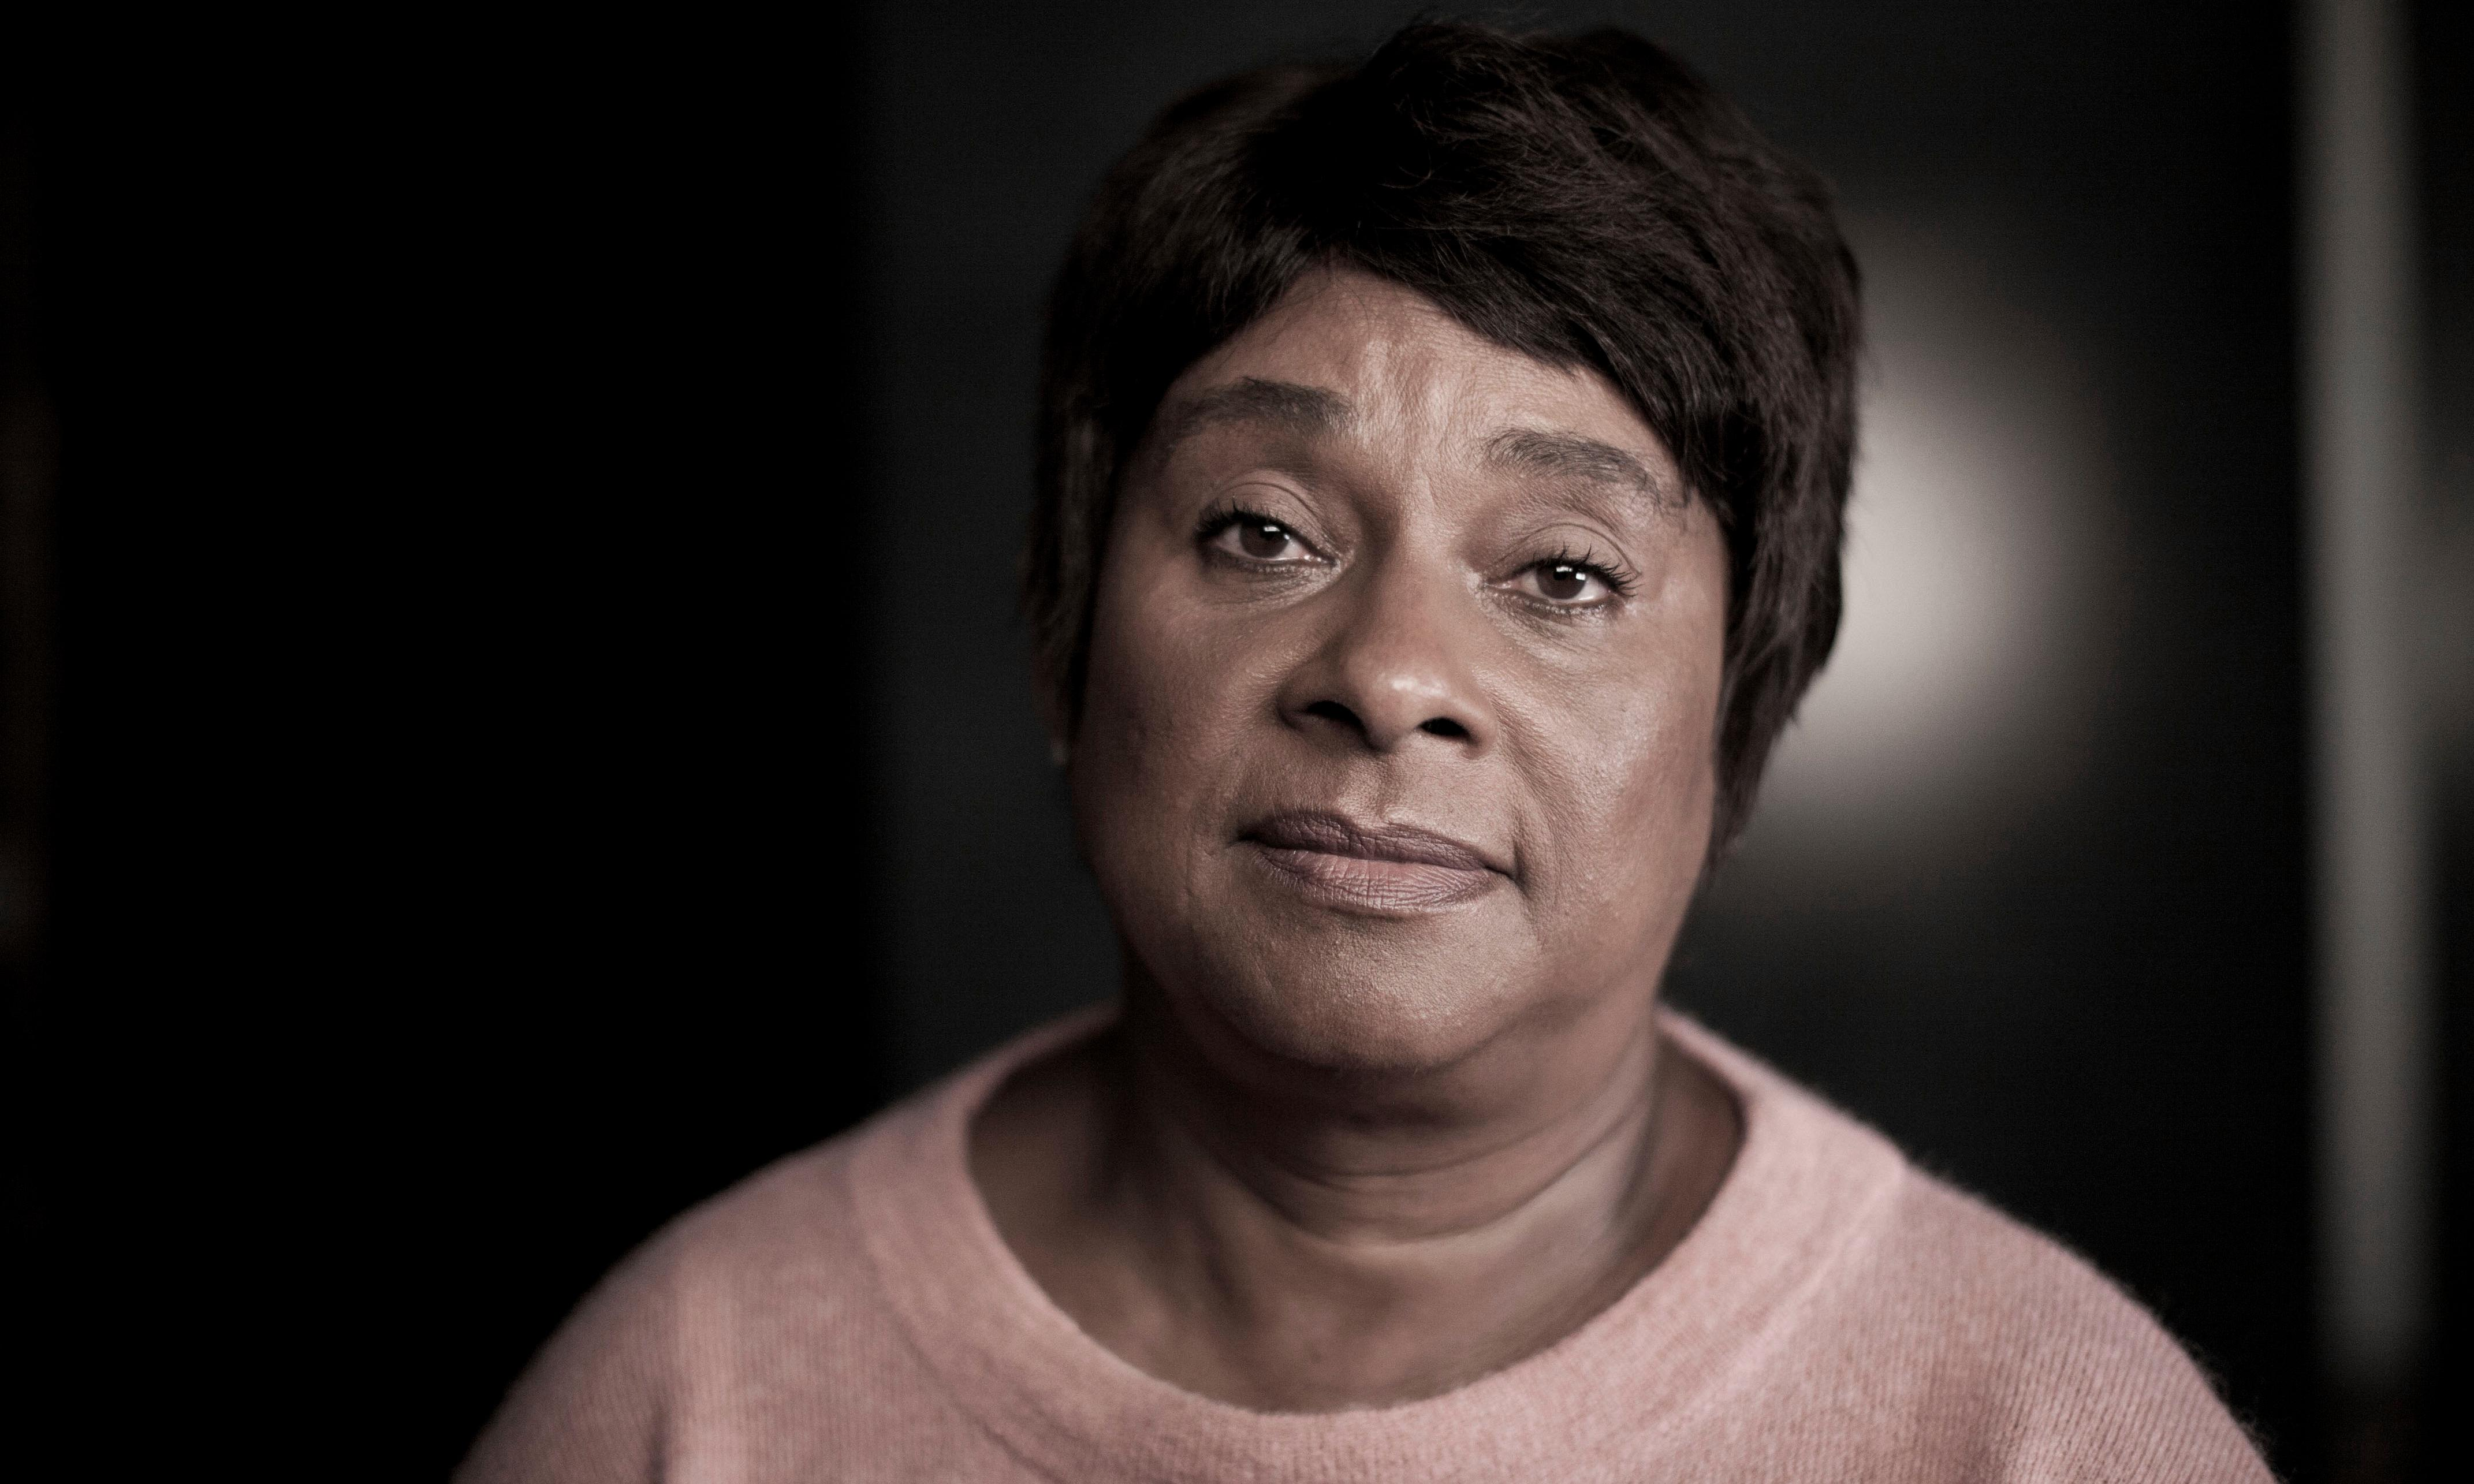 We must teach tolerance, says Stephen Lawrence's mother